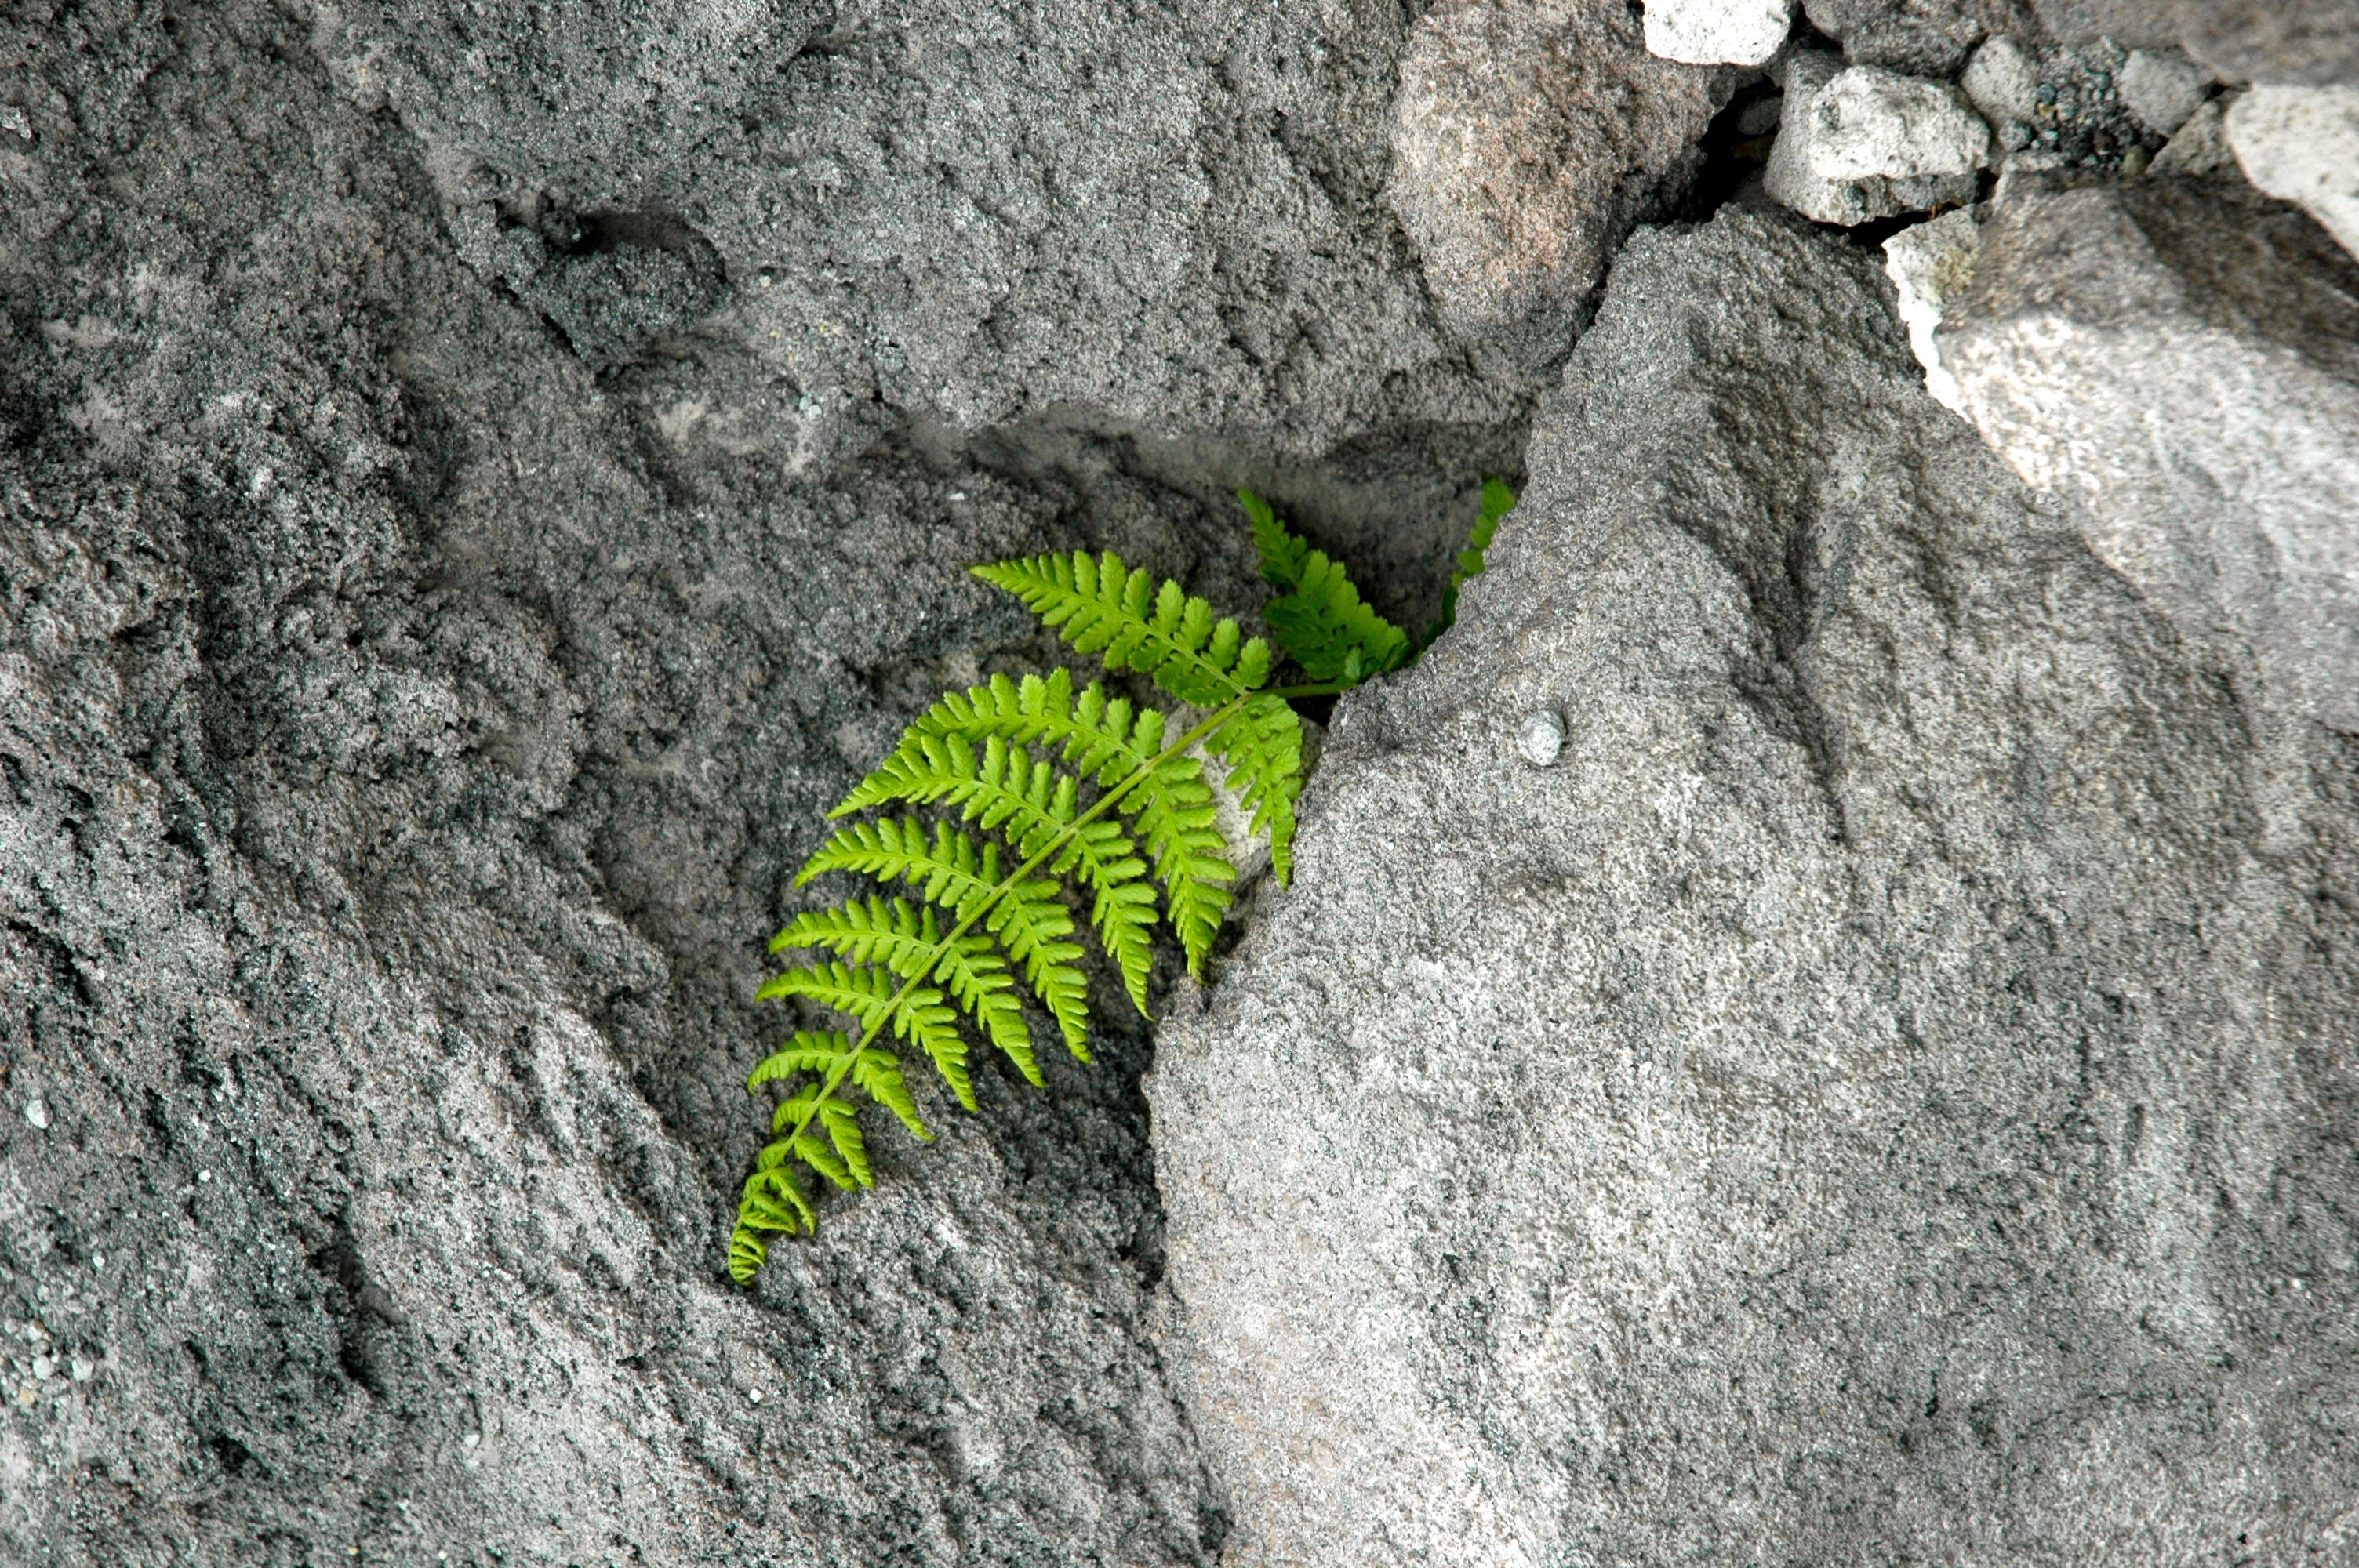 Pacific Northwest fern growing out of a rock